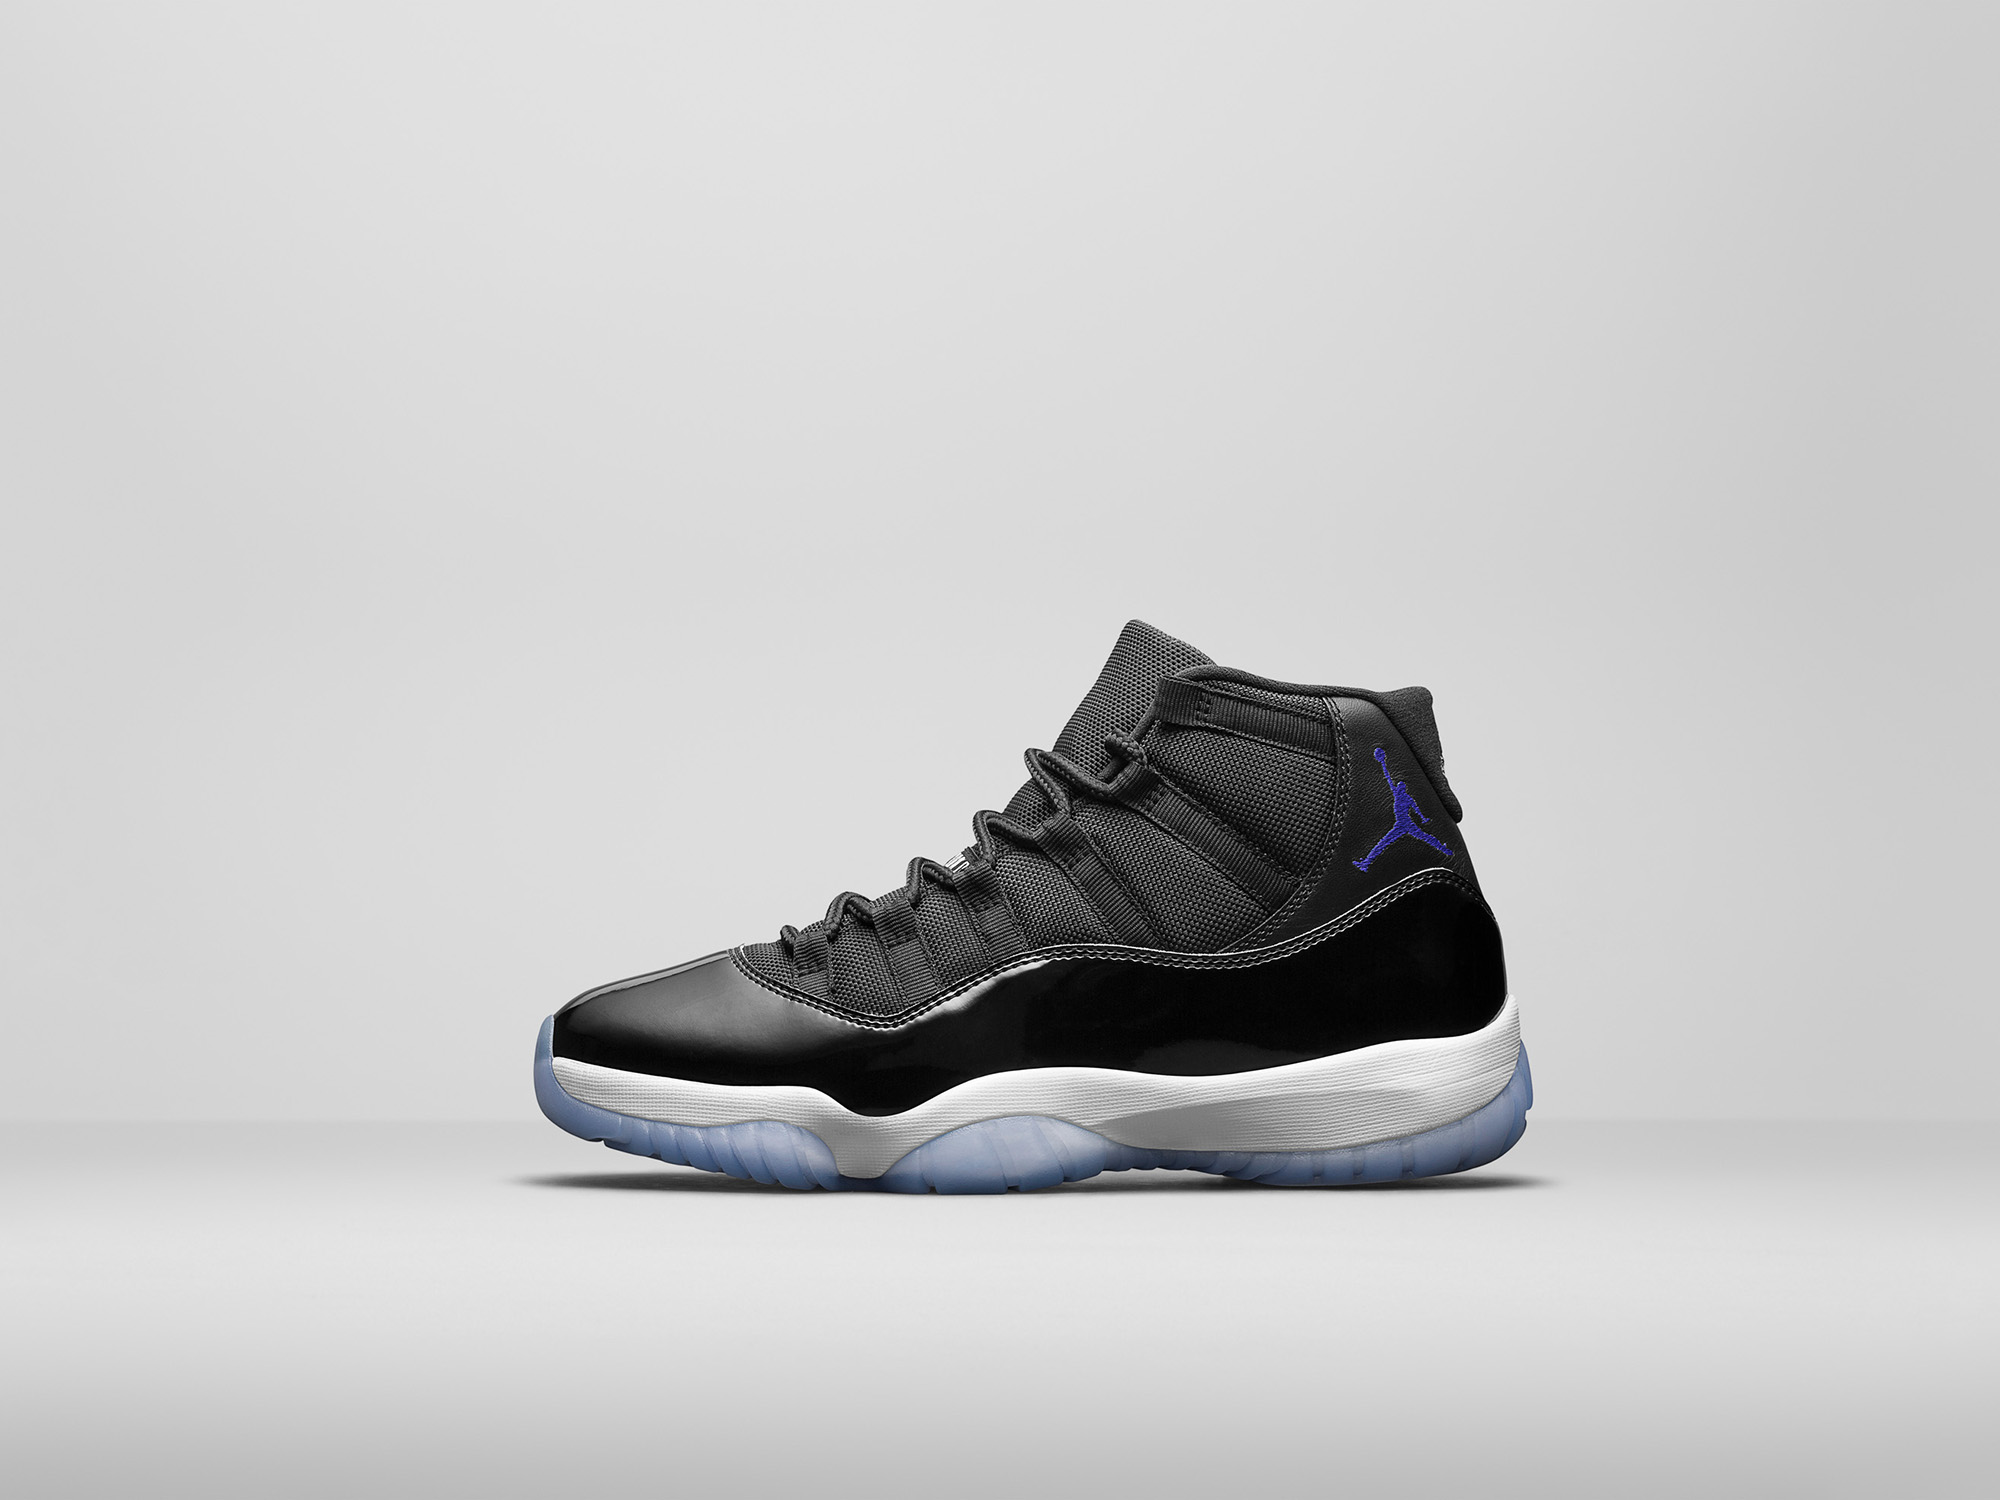 3647b558b69ddf Air Jordan 11  Ranking the greatest colorways